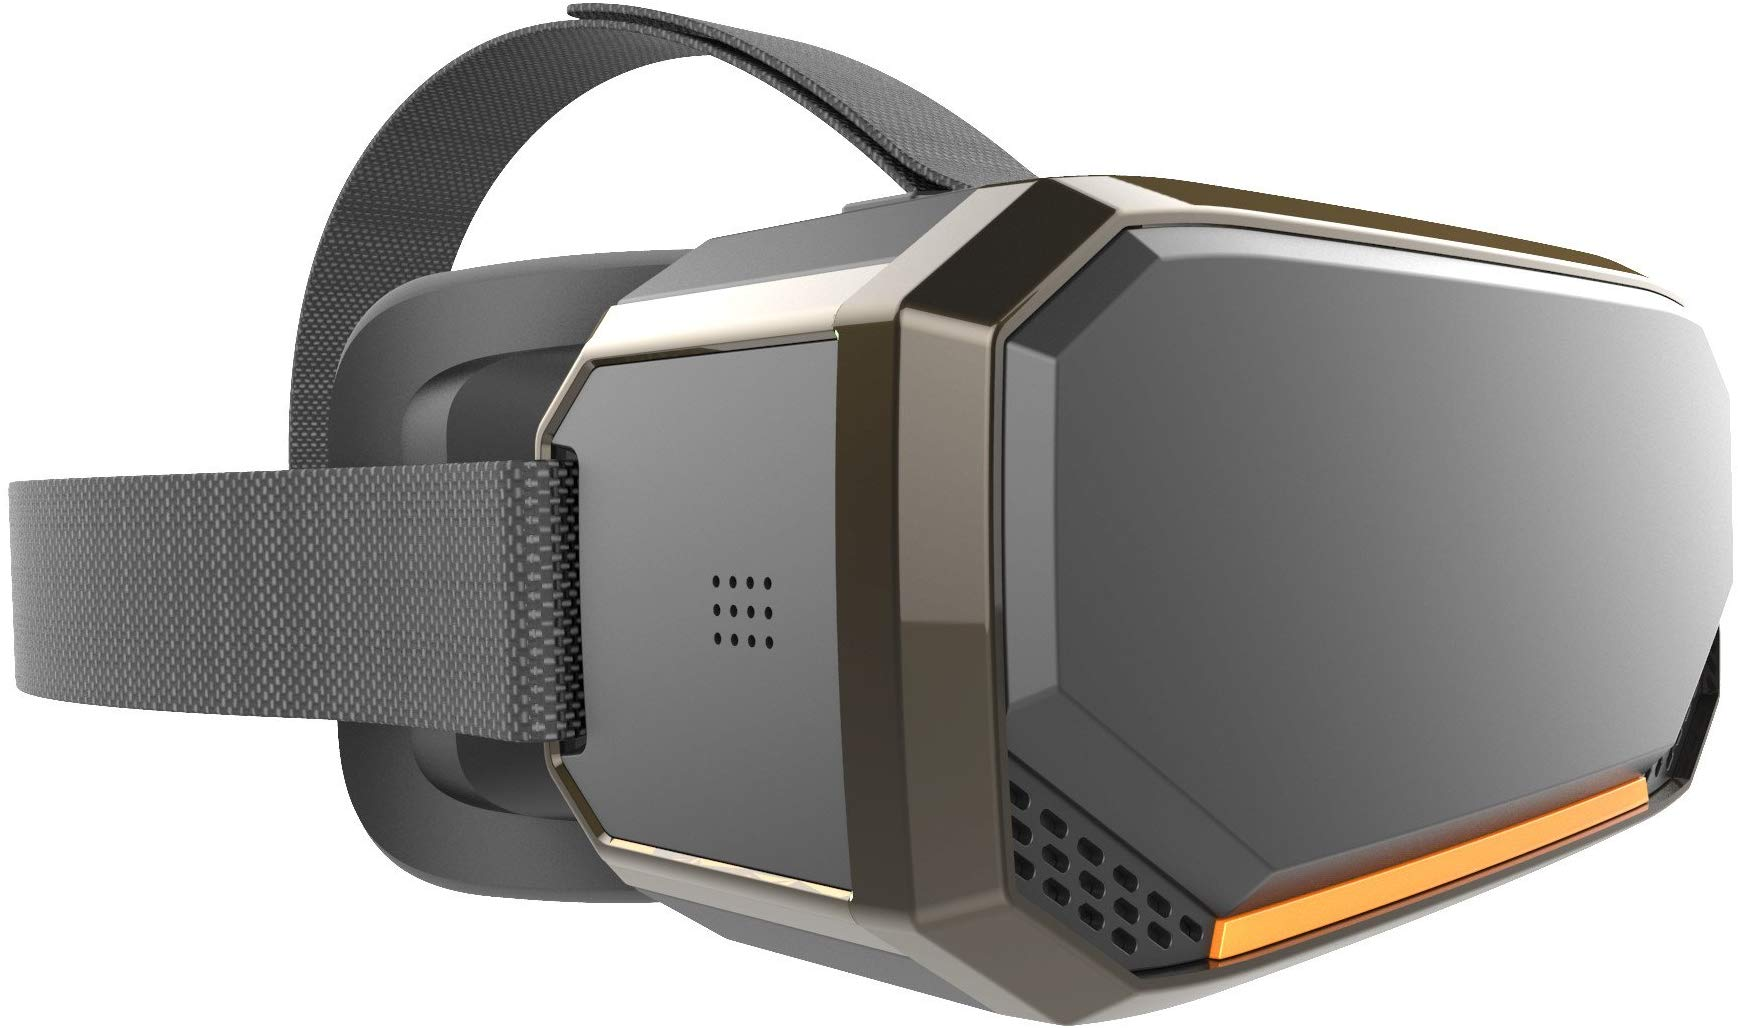 4. GenBasic Virtual Reality Headset System